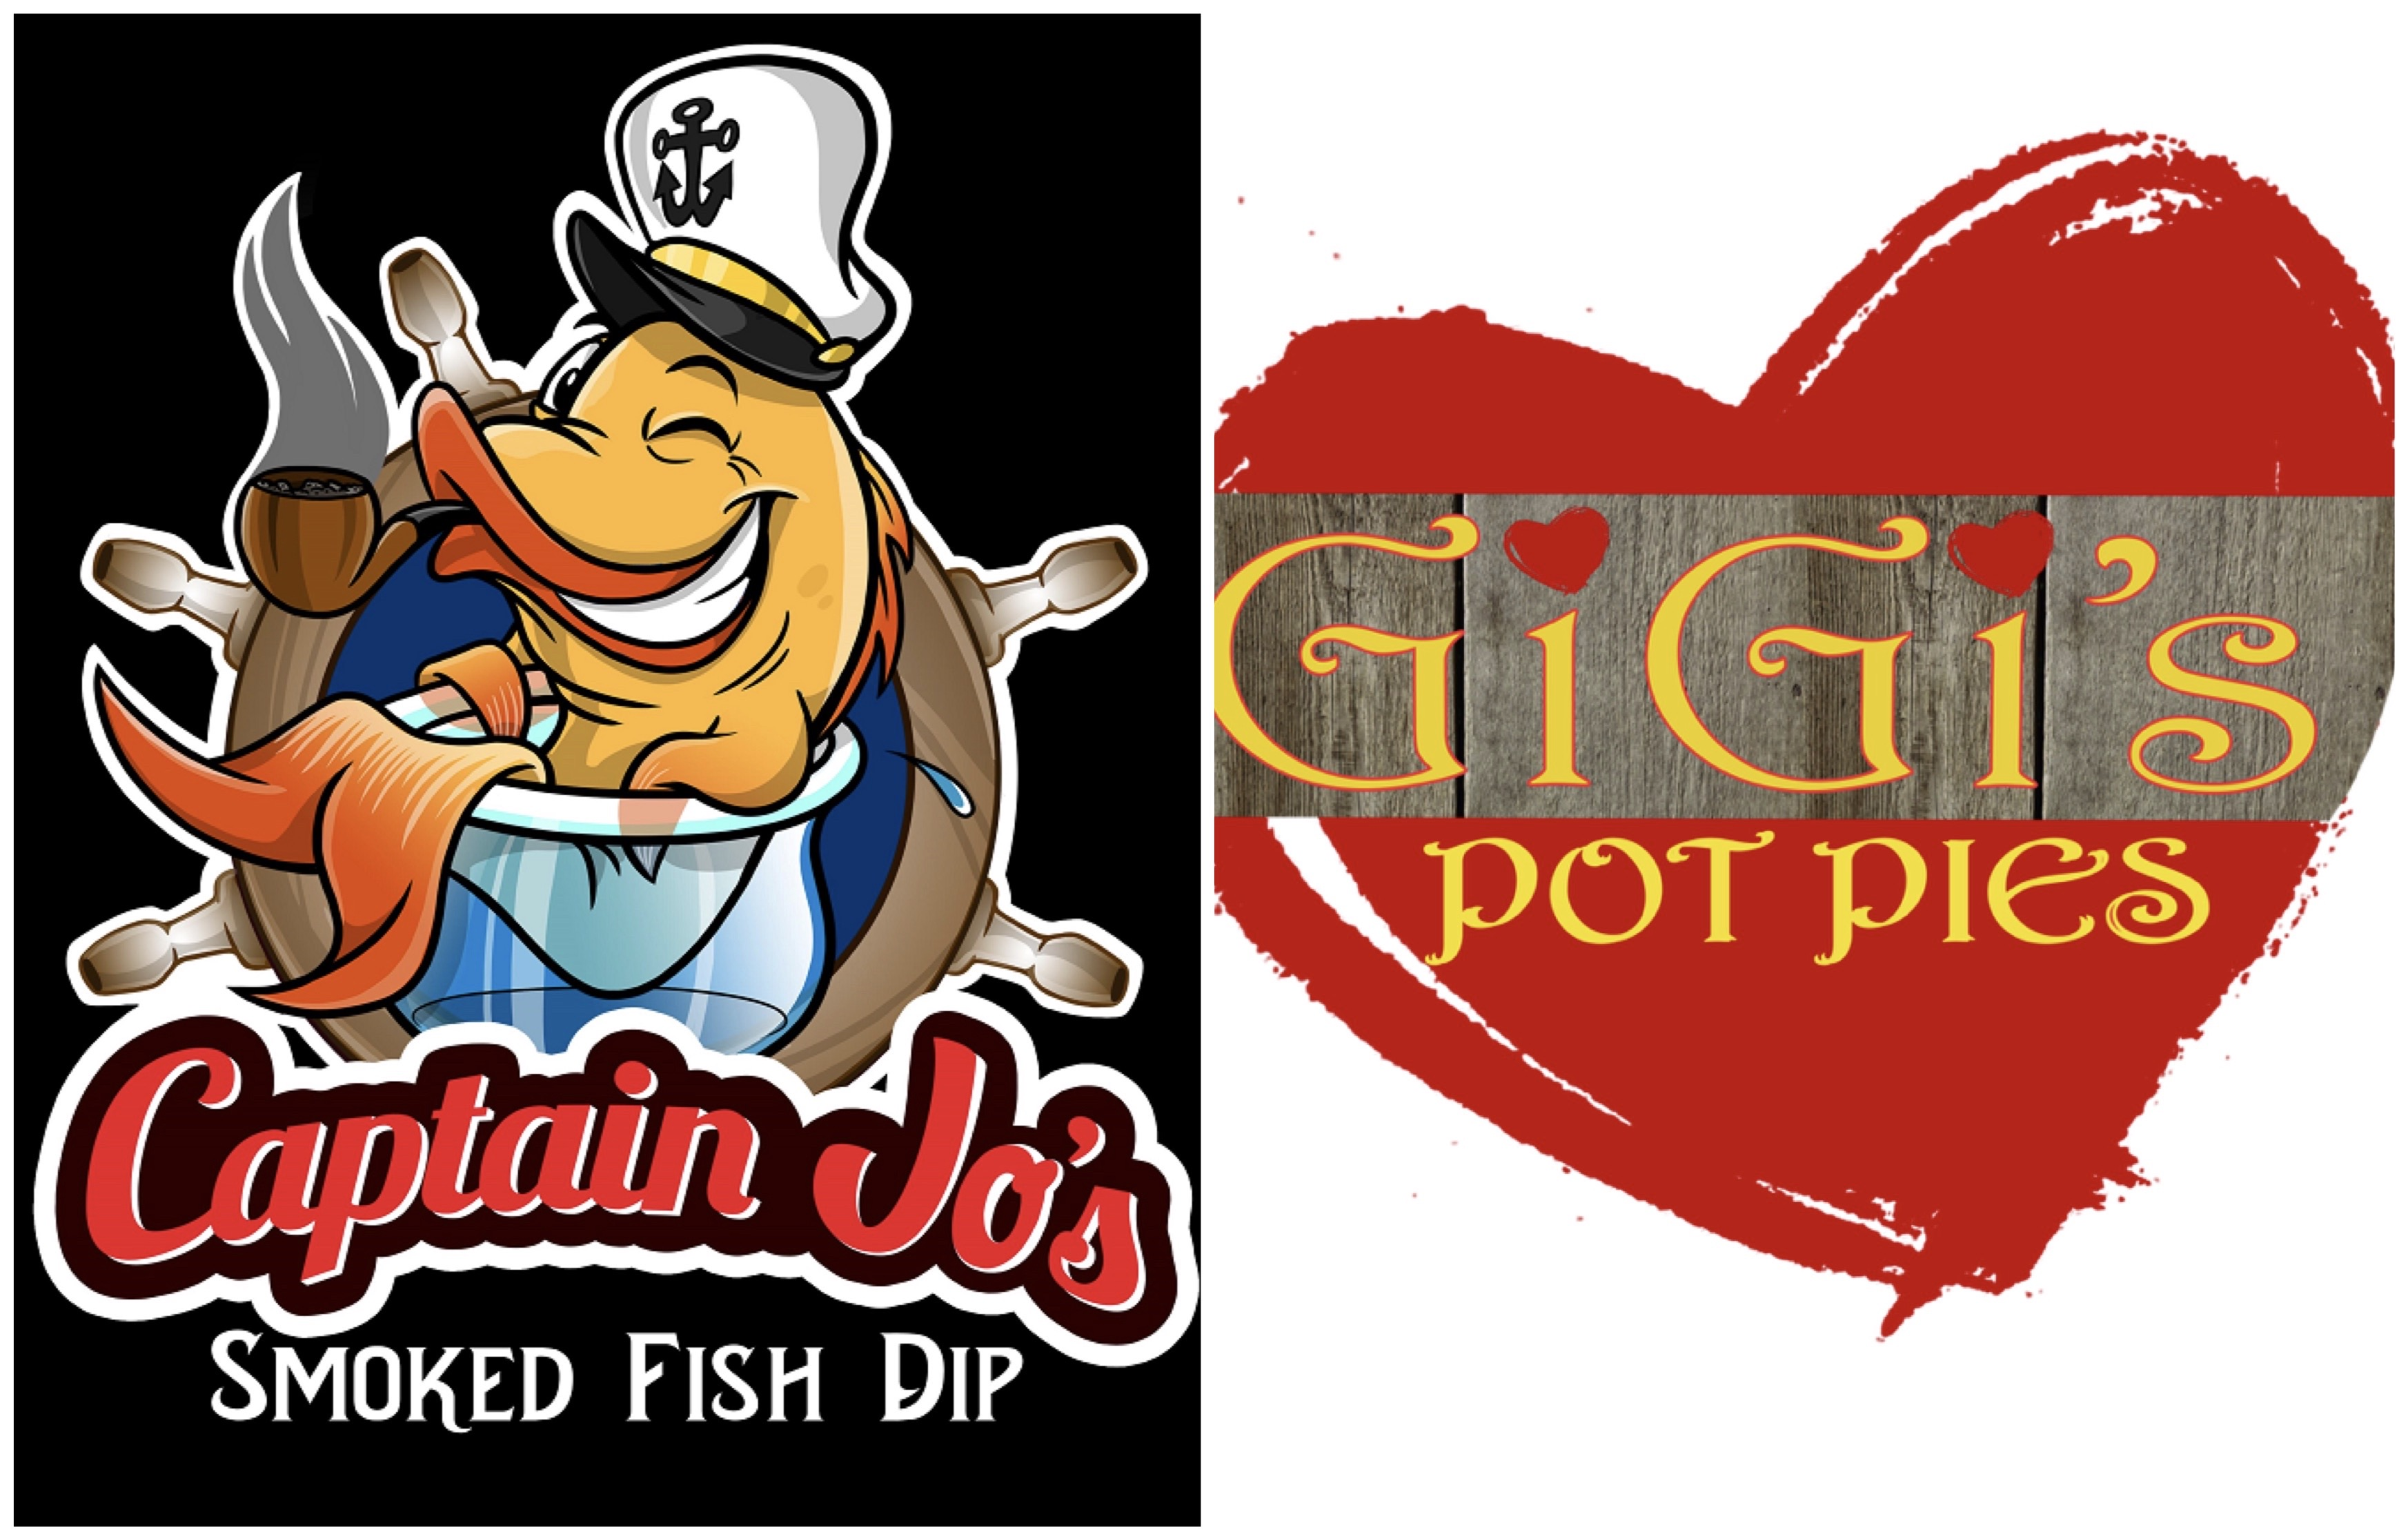 Captain Jo's Fish Dips & GiGi's Chicken Pot Pies